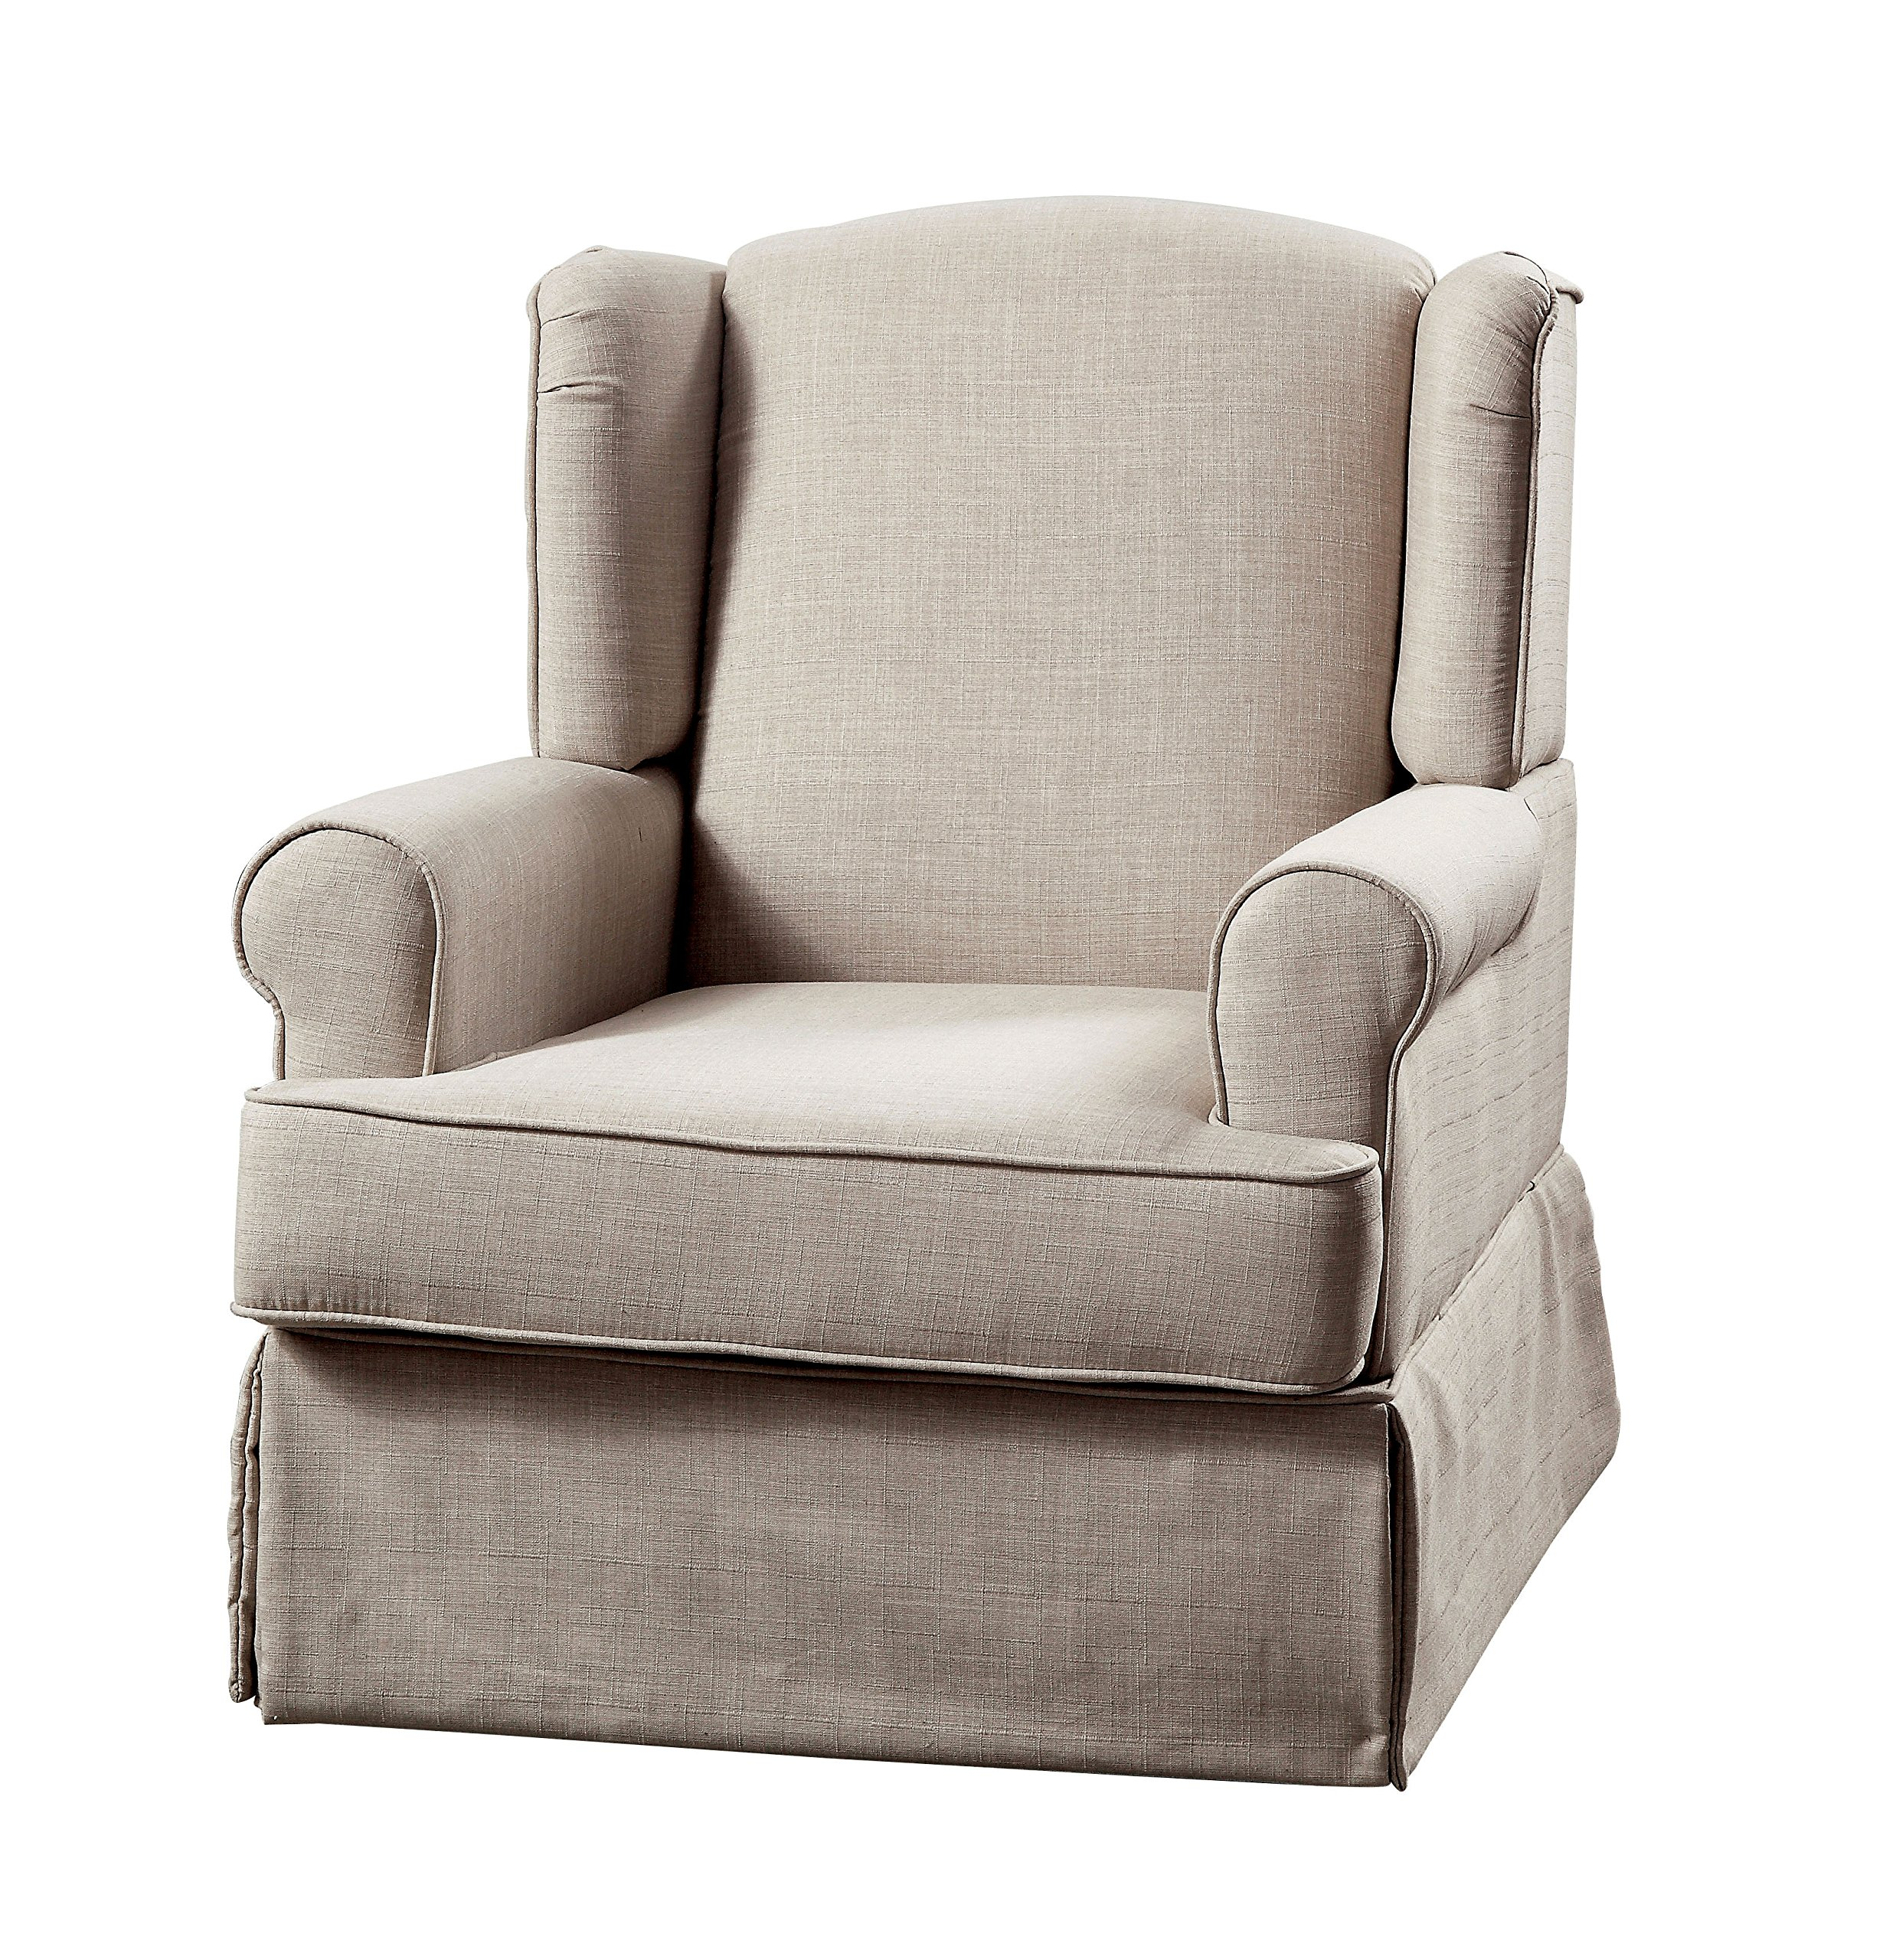 HOMES: Inside + Out IDF-RC6508BG Imogen Transitional 360 Glider and Rocker Chair, Beige